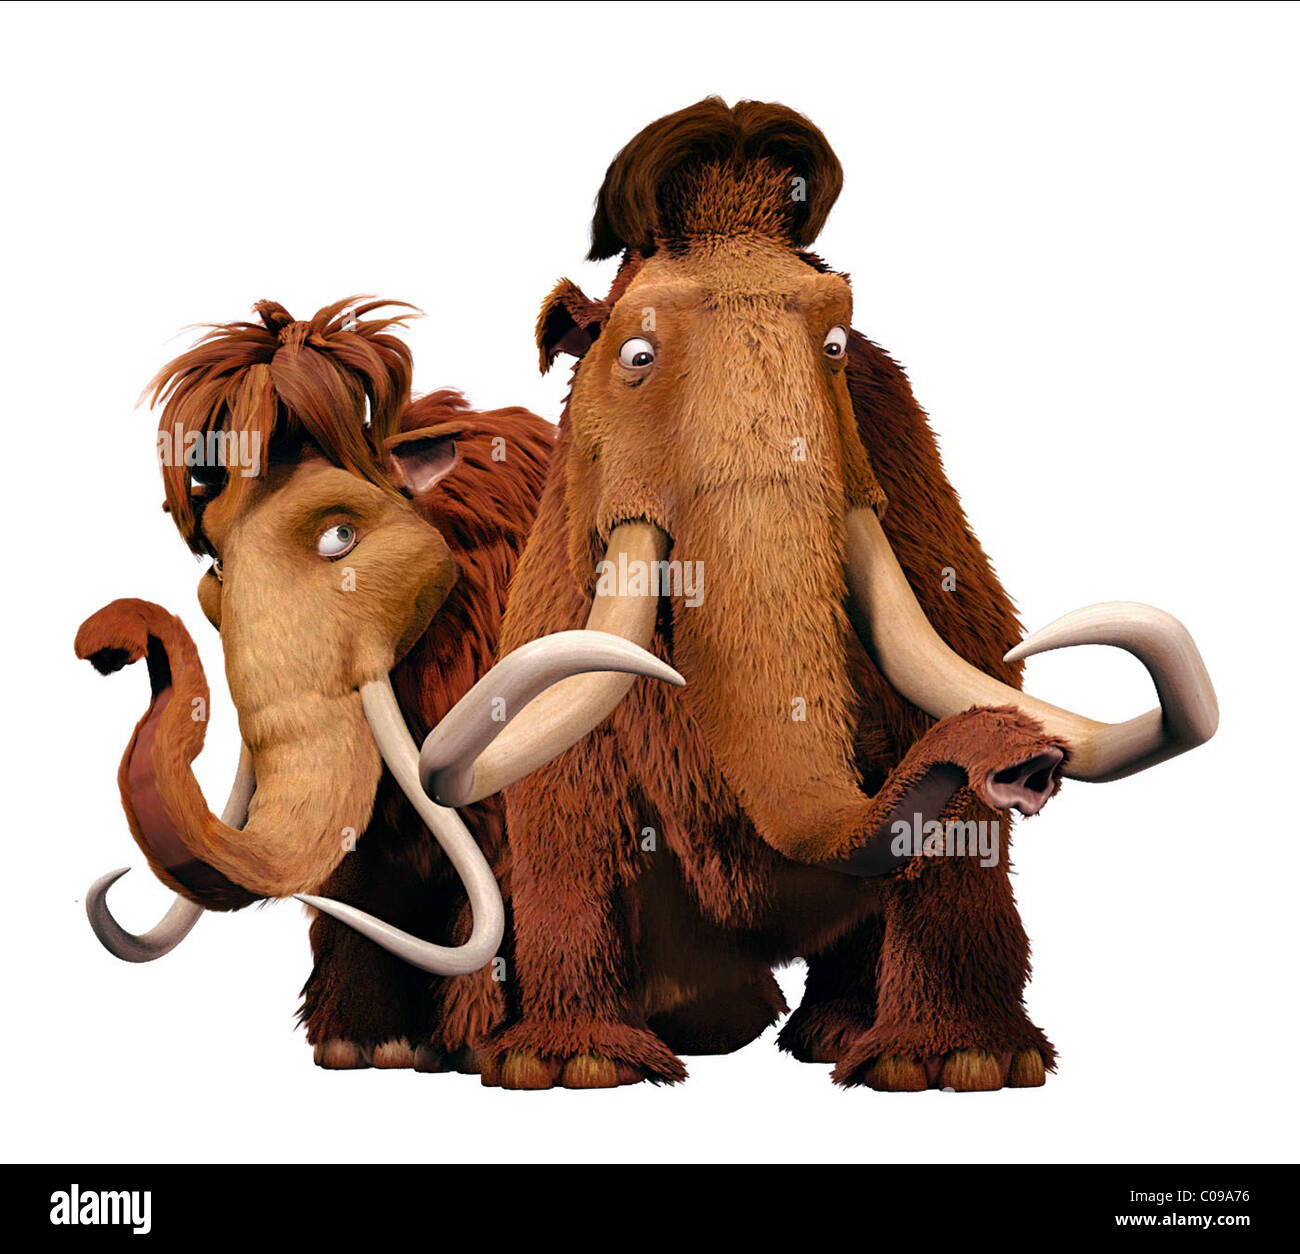 ELLIE & MANNY ICE AGE: DAWN OF THE DINOSAURS; ICE AGE 3 (2009) - Stock Image